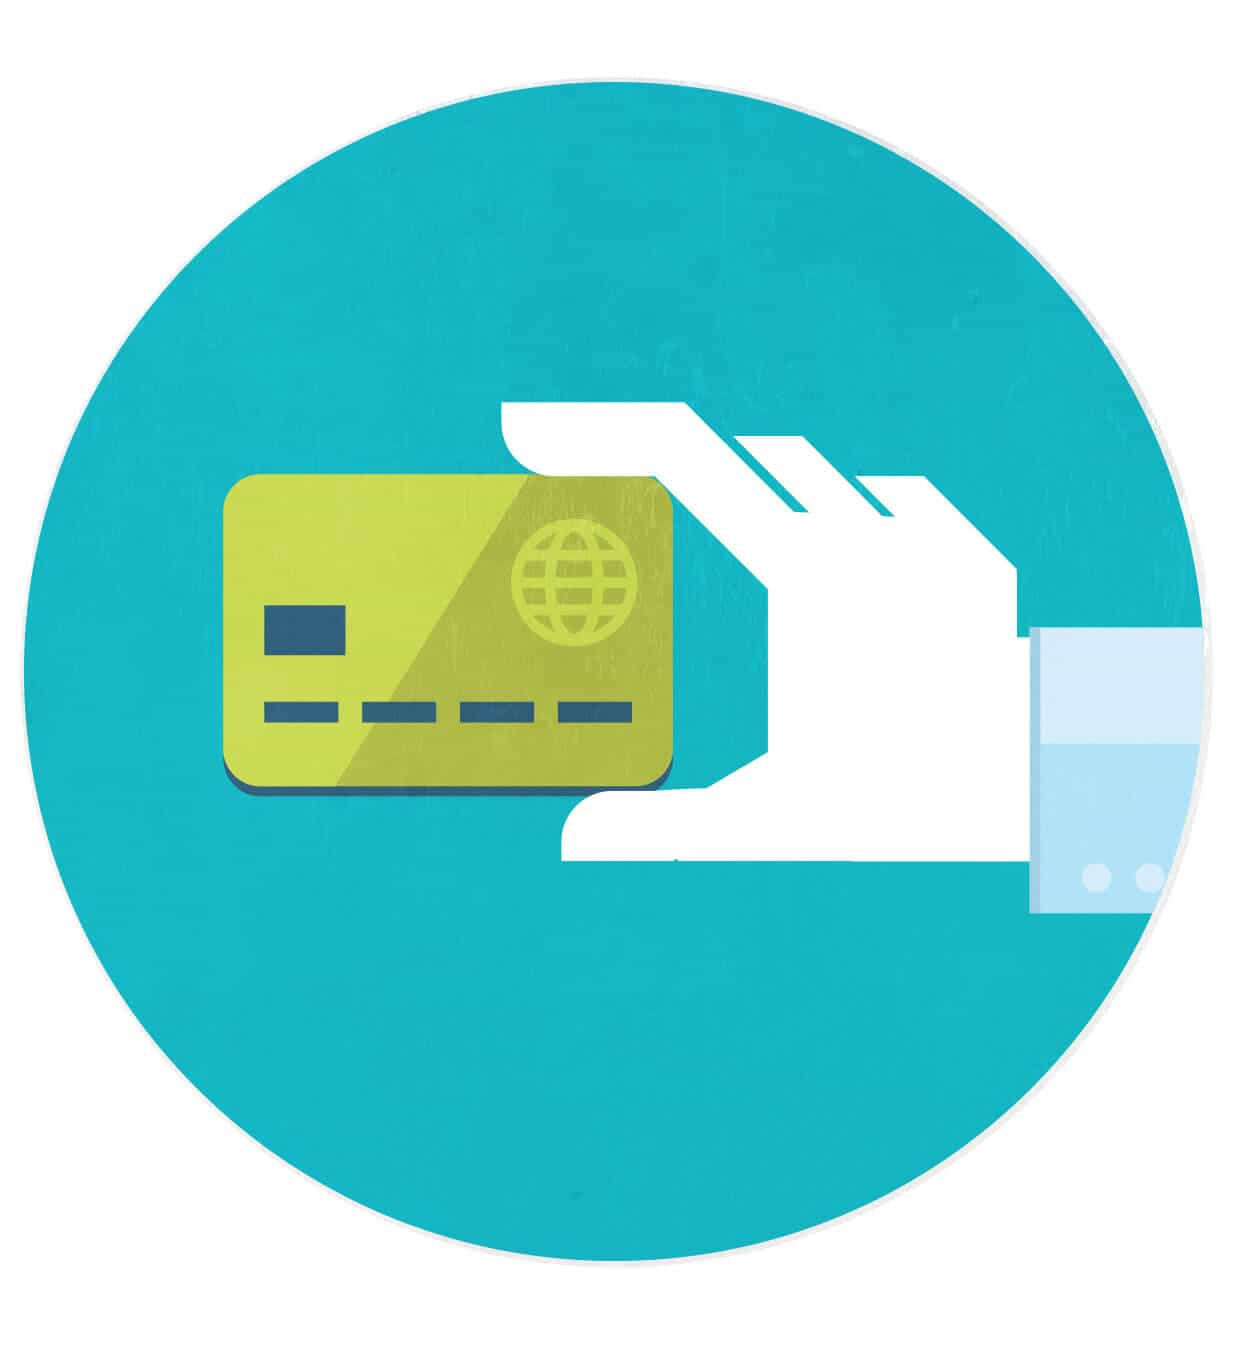 debt and credit card debts Why is credit-card debt increasing lending to people who are unlikely to pay debts back can have disastrous effects, from keeping families in debt for years to ruining their credit scores, which makes it more difficult for them to borrow responsibly in the future.